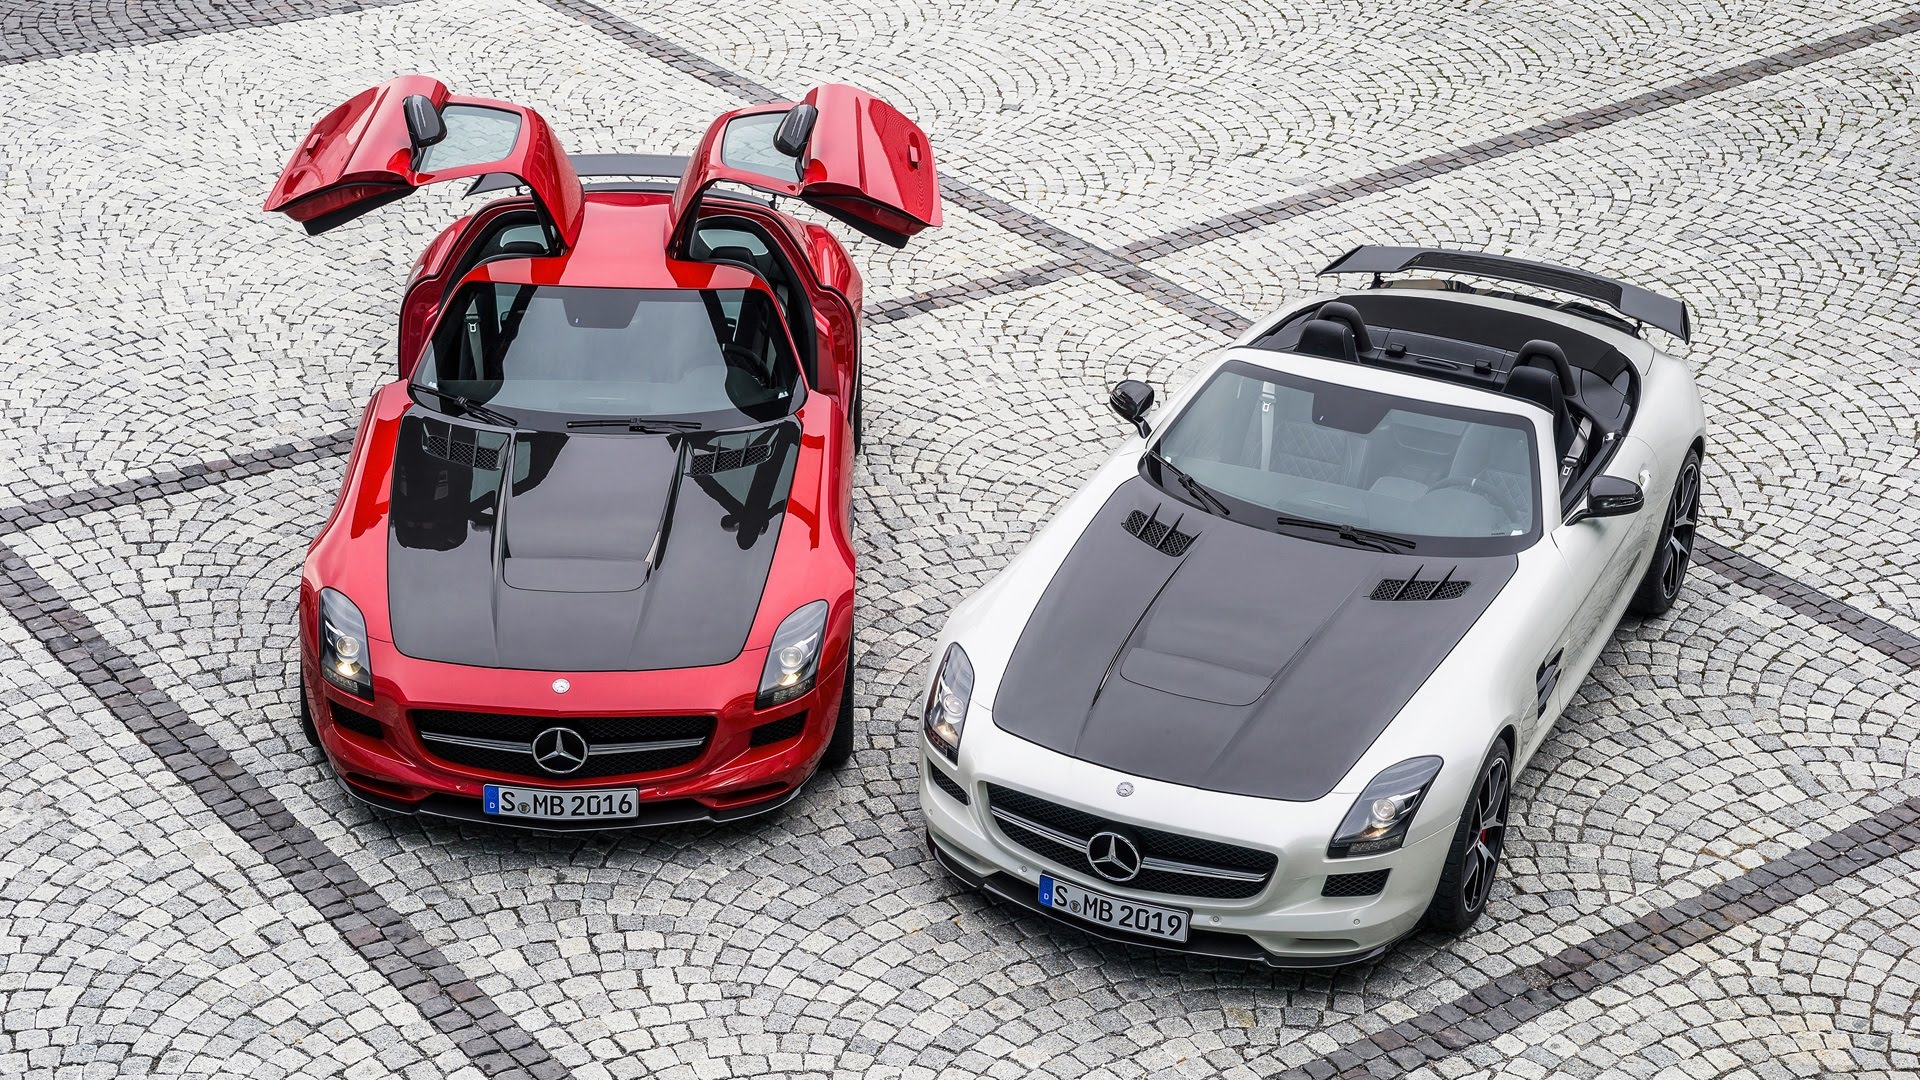 2015 Mercedes-Benz Sls Amg Gt Final Edition #22